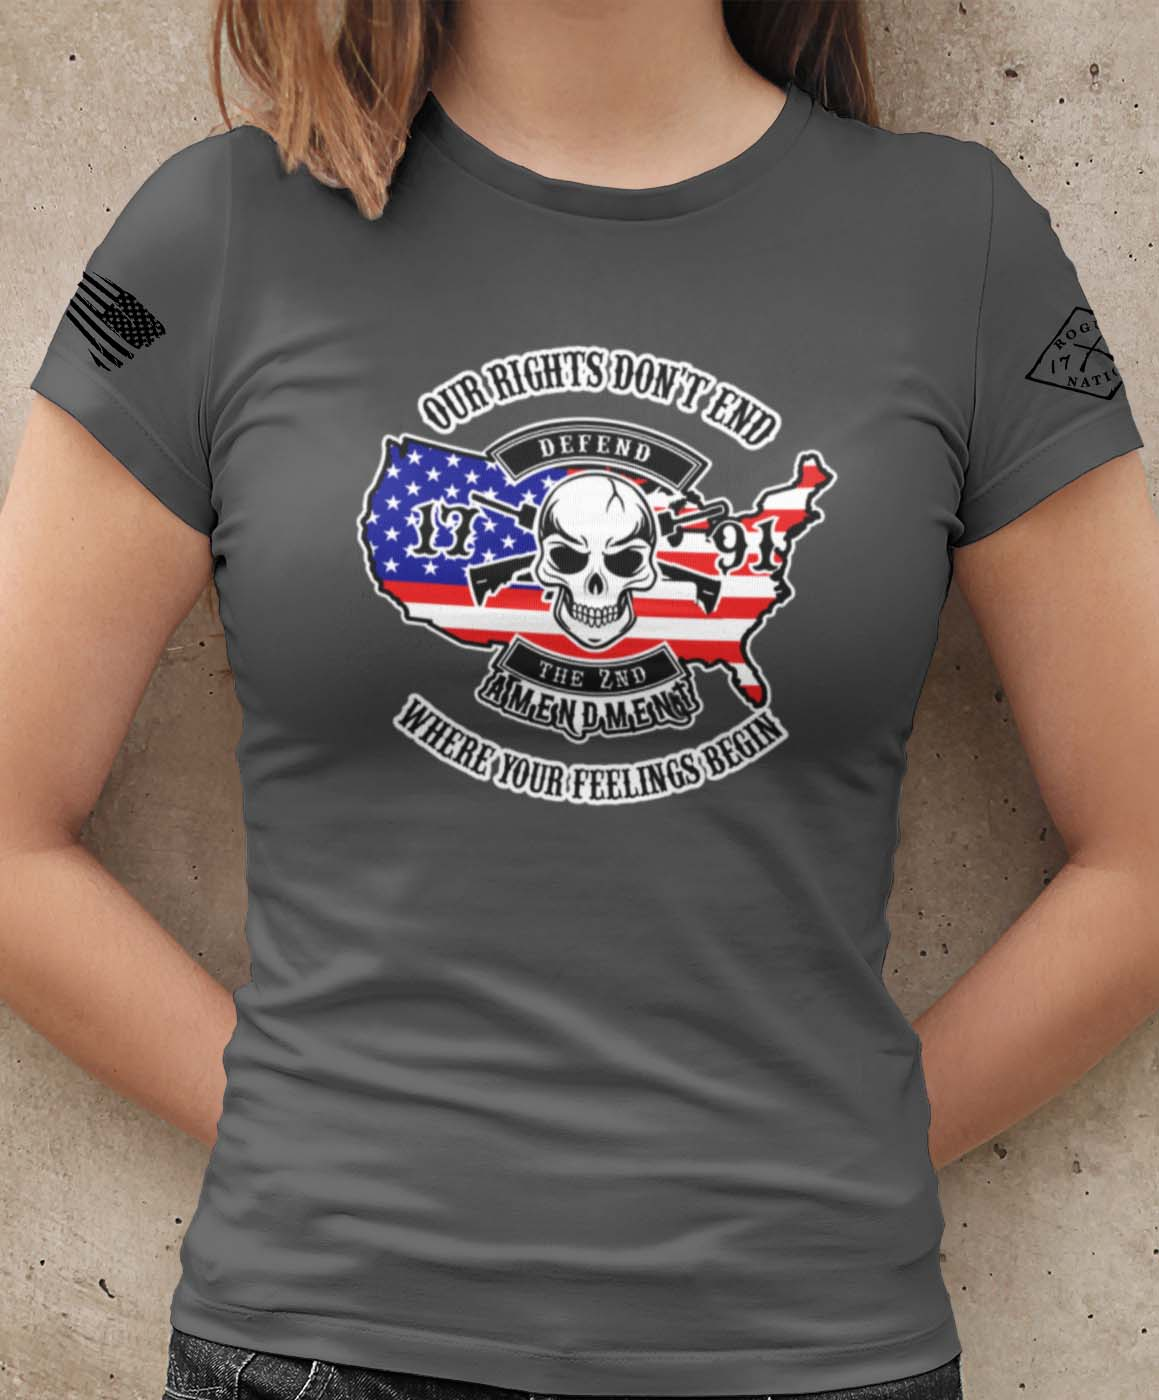 Our Rights Don't End Womens Tshirt in Charcoal